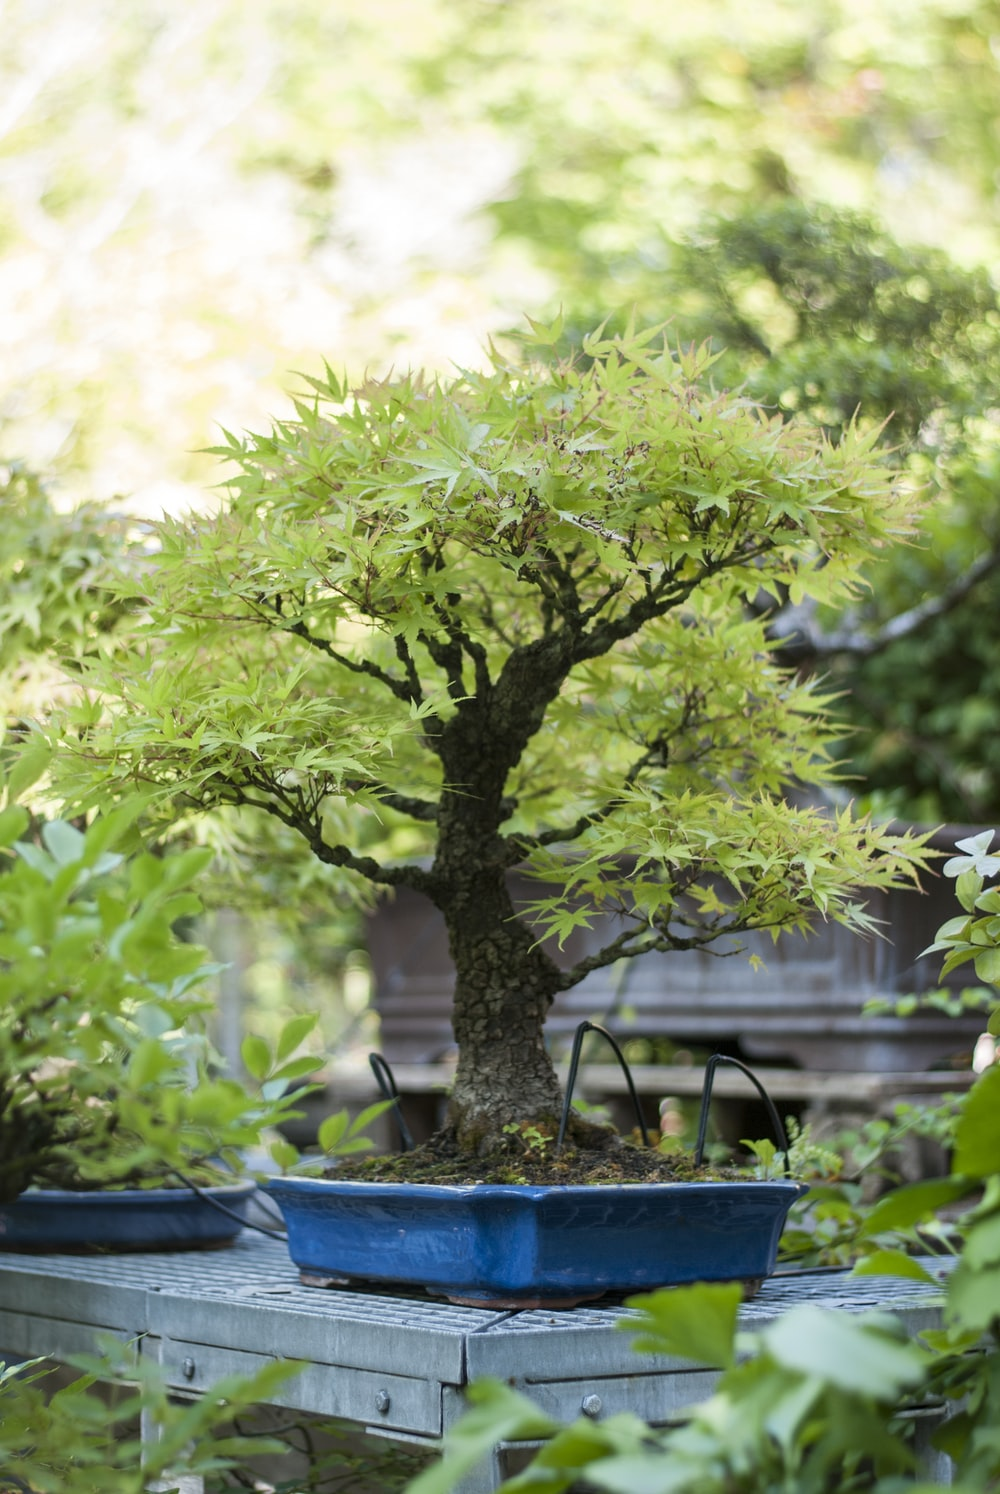 bonsai plant on table in garden